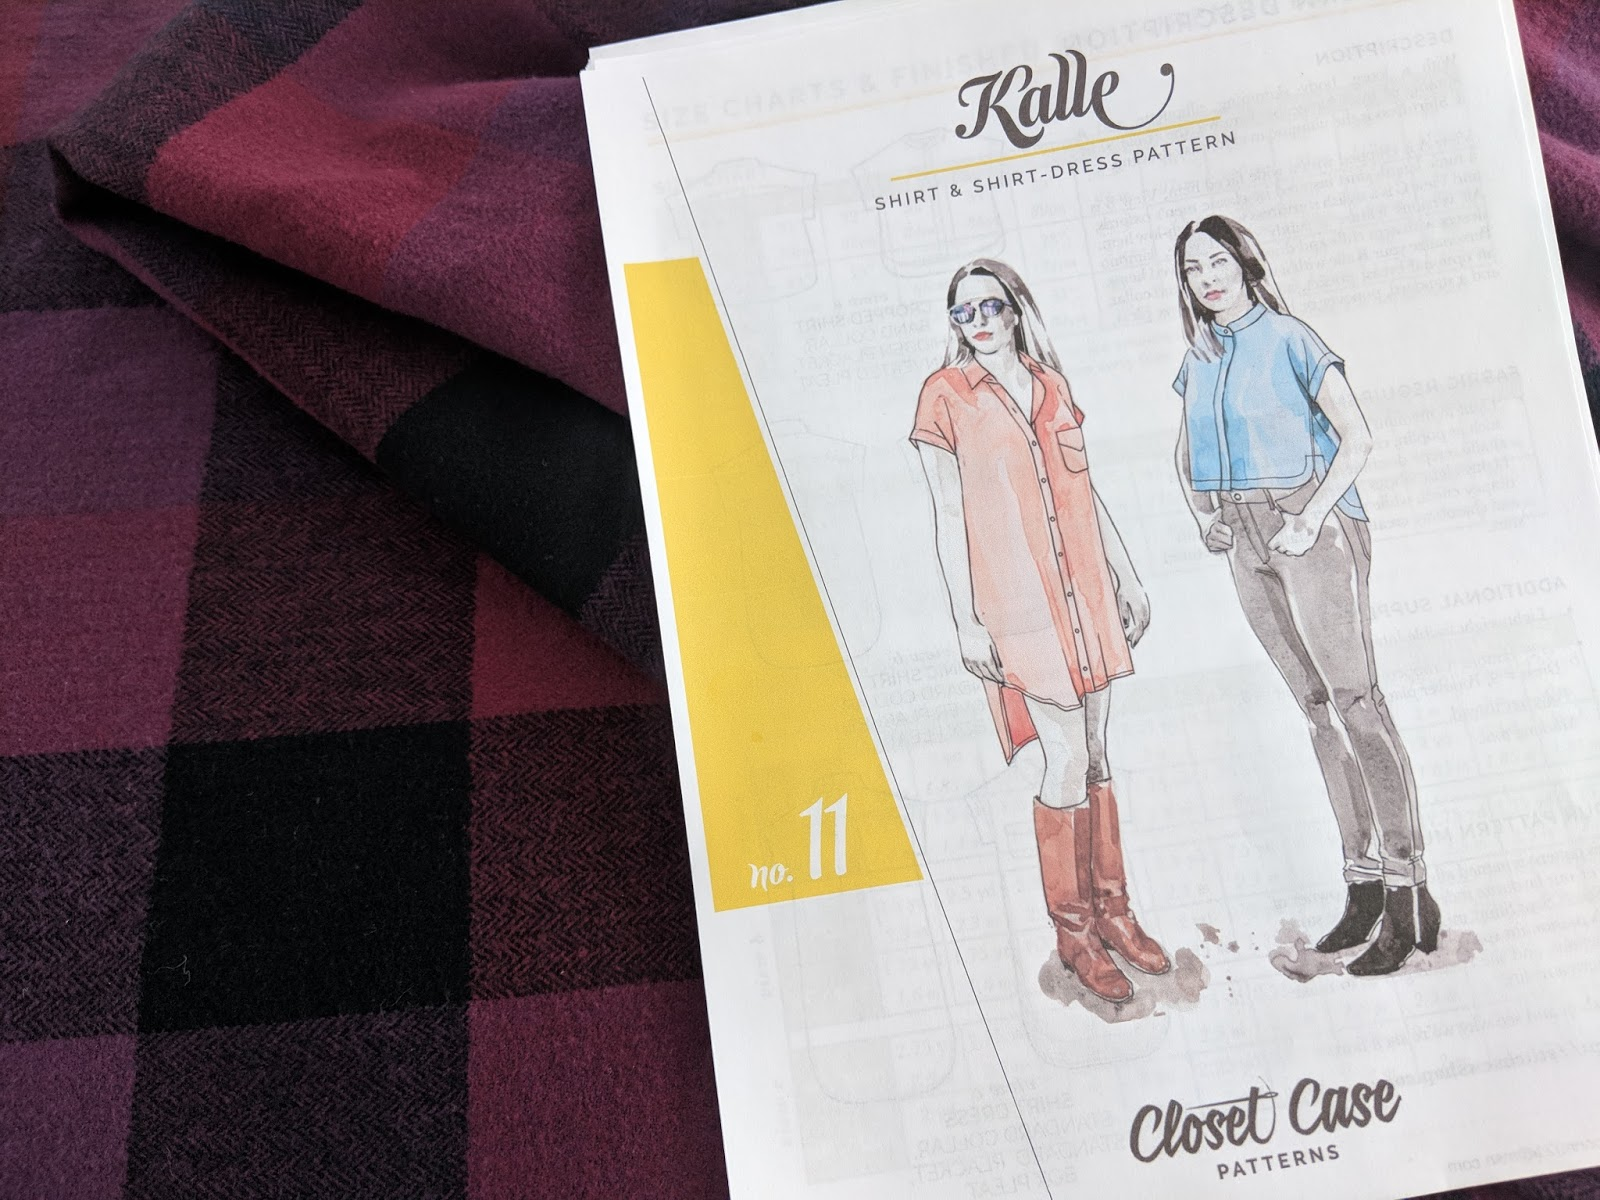 70c9e24ba7f The Kalle shirt and shirtdress pattern from Closet Case Patterns wasn t  exactly love at first sight for me. I ve never been a huge button up wearer  and it ...